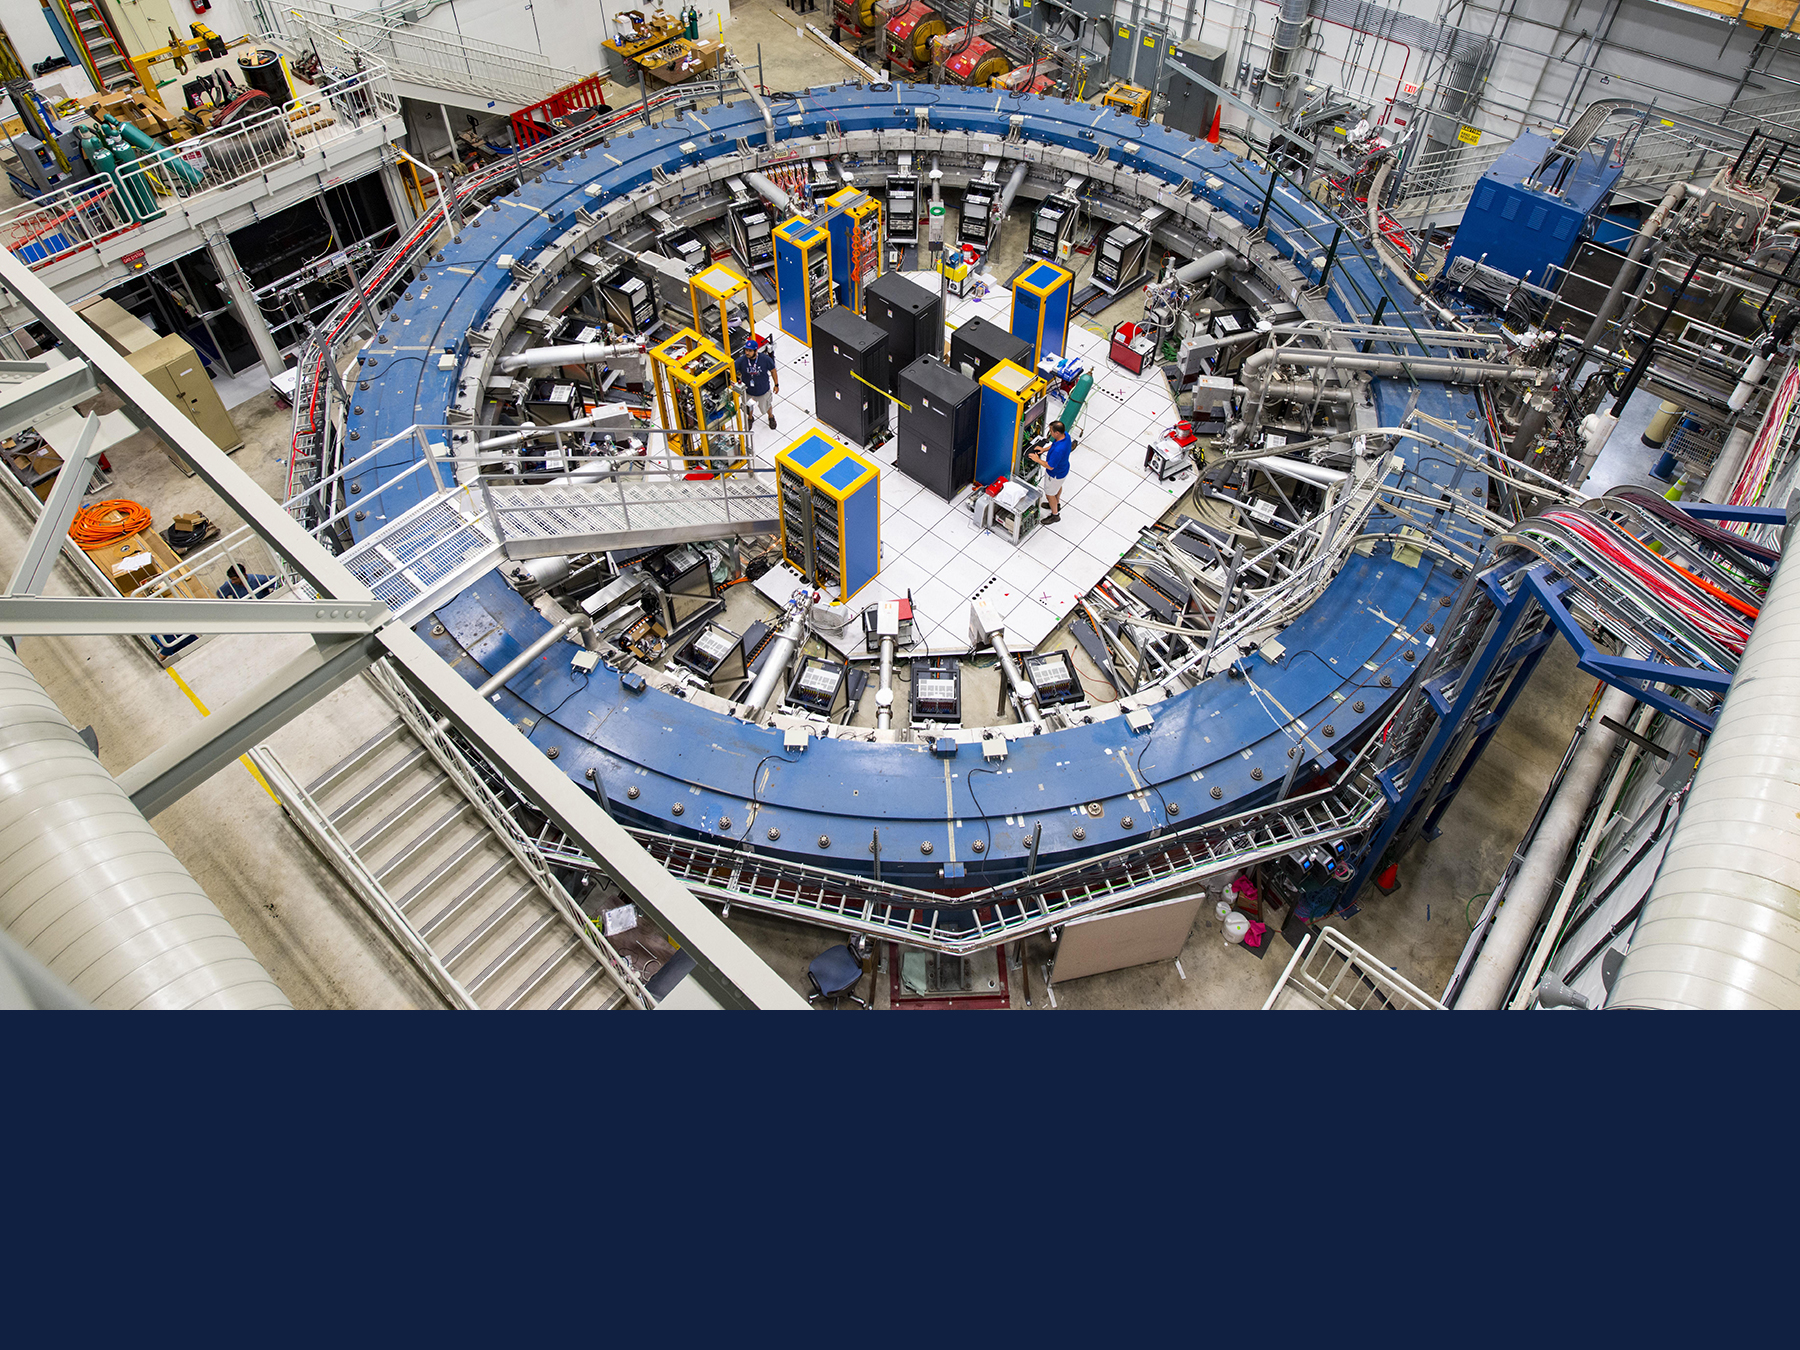 The Muon g-2 ring sits in its detector hall amidst electronics racks, the muon beamline, and other equipment. This impressive experiment operates at negative 450 degrees Fahrenheit and studies the precession (or wobble) of muons as they travel through the magnetic field. Photo by Reidar Hahn/Fermilab